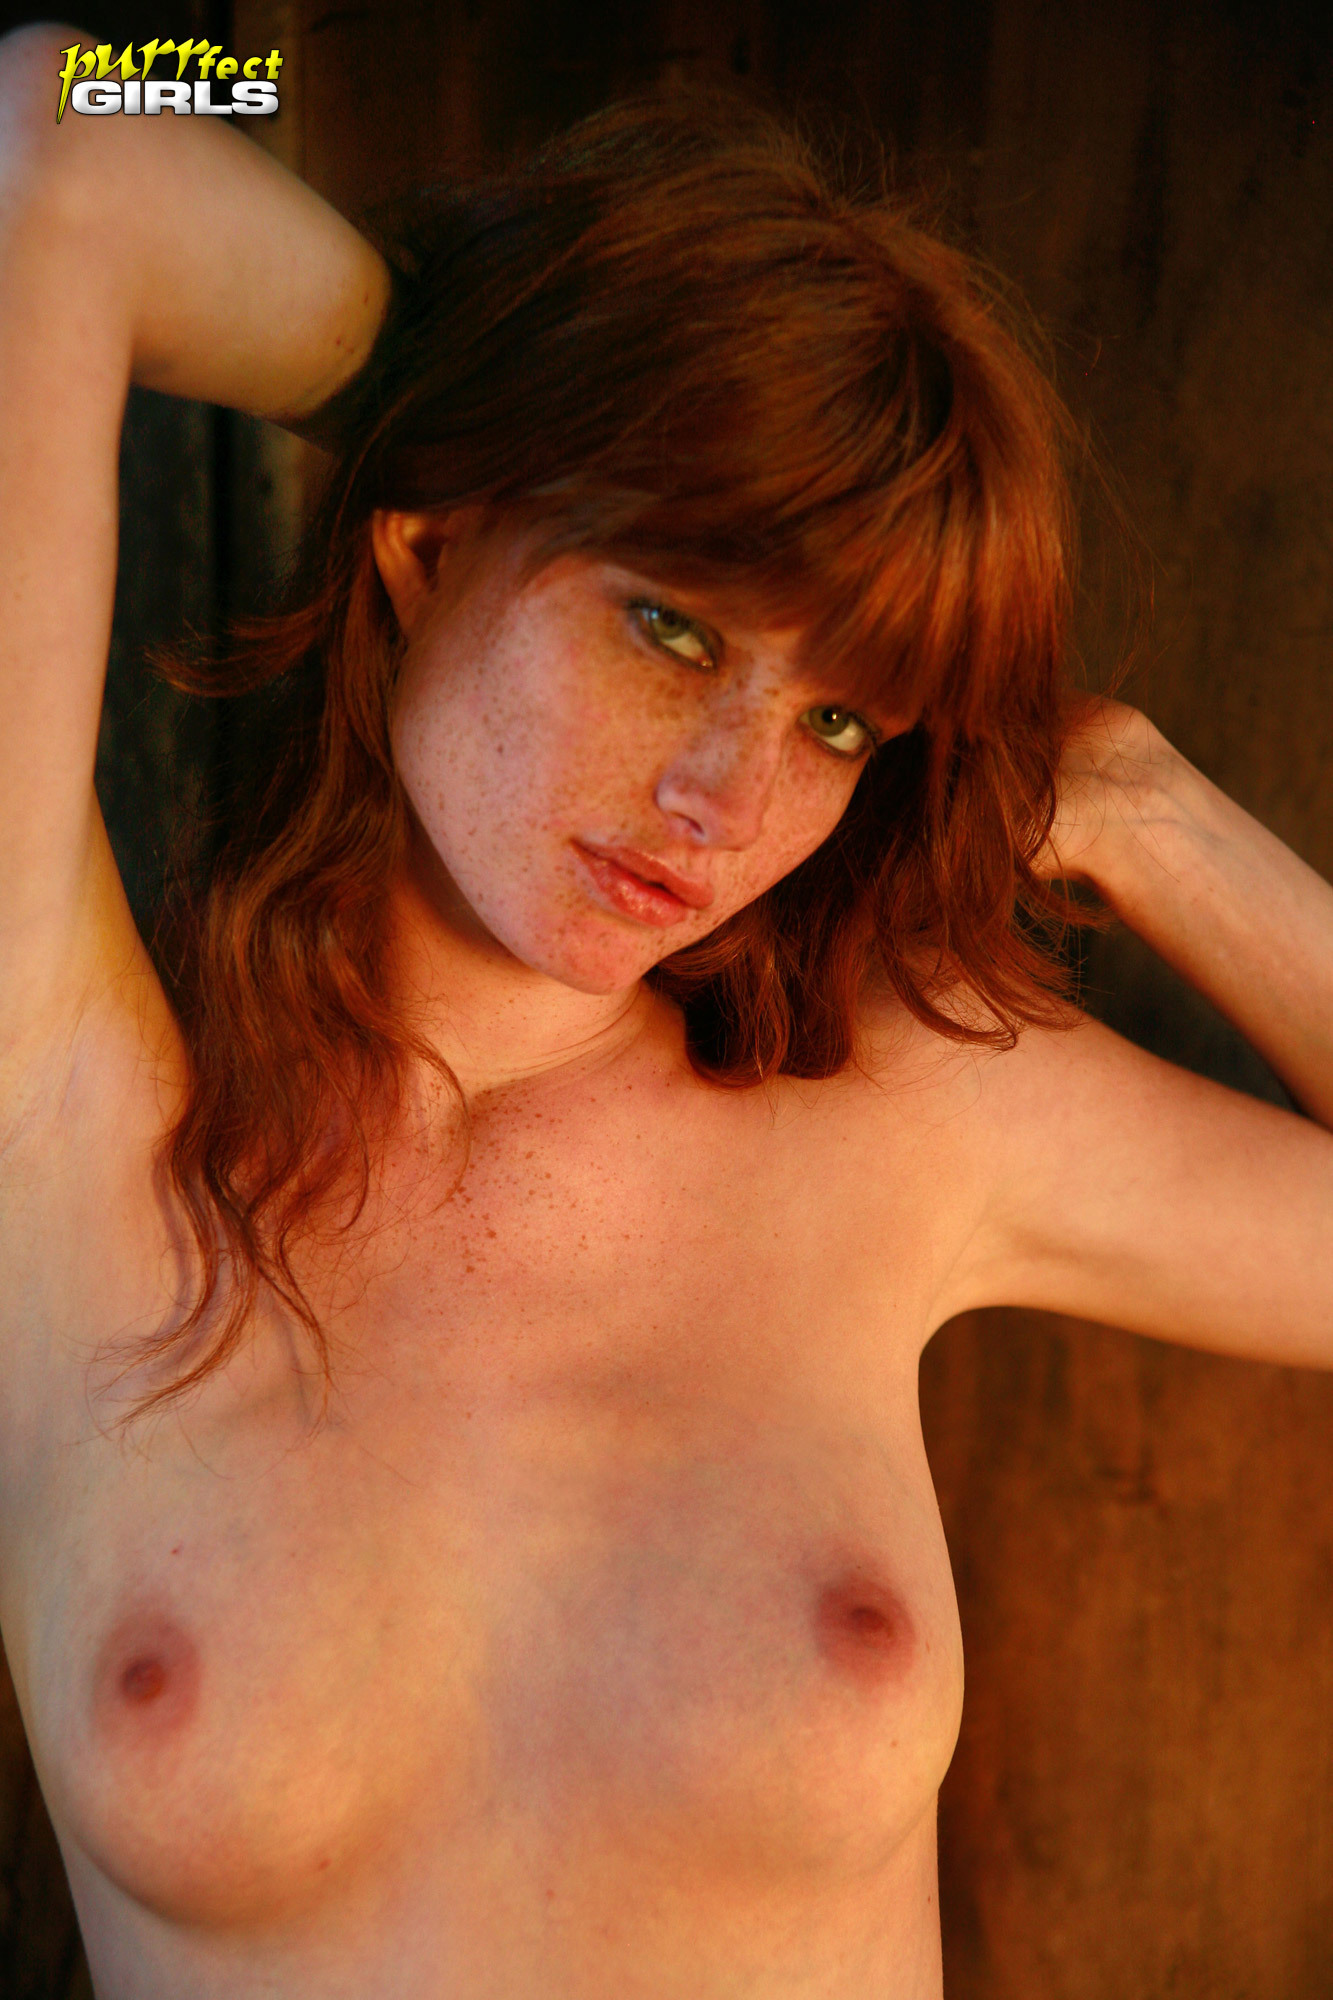 Women with freckles nude